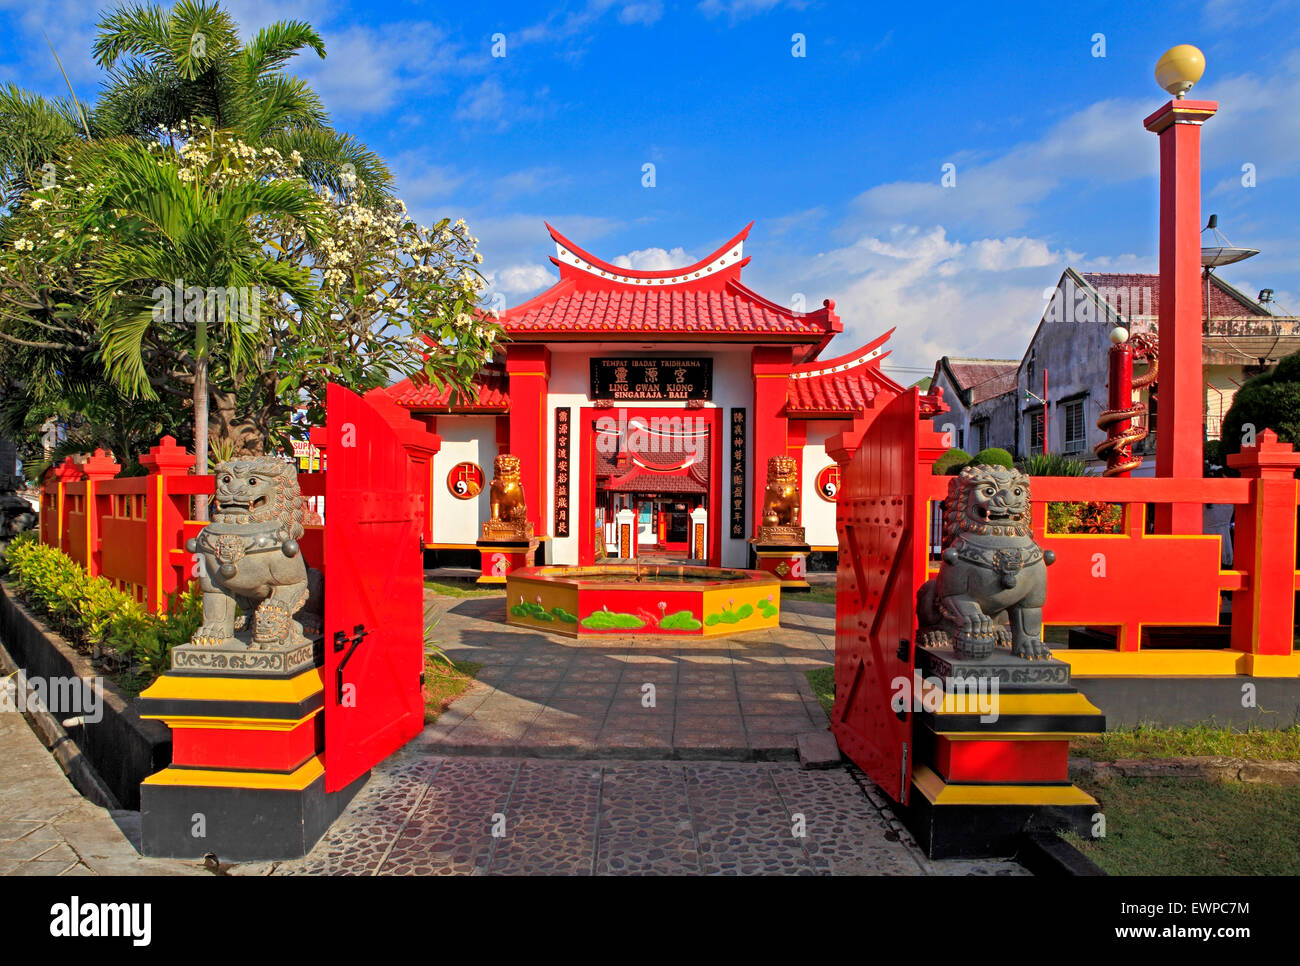 chinese-temple-ling-gwan-kiong-singaraja-bali-indonesia-also-called-EWPC7M.jpg